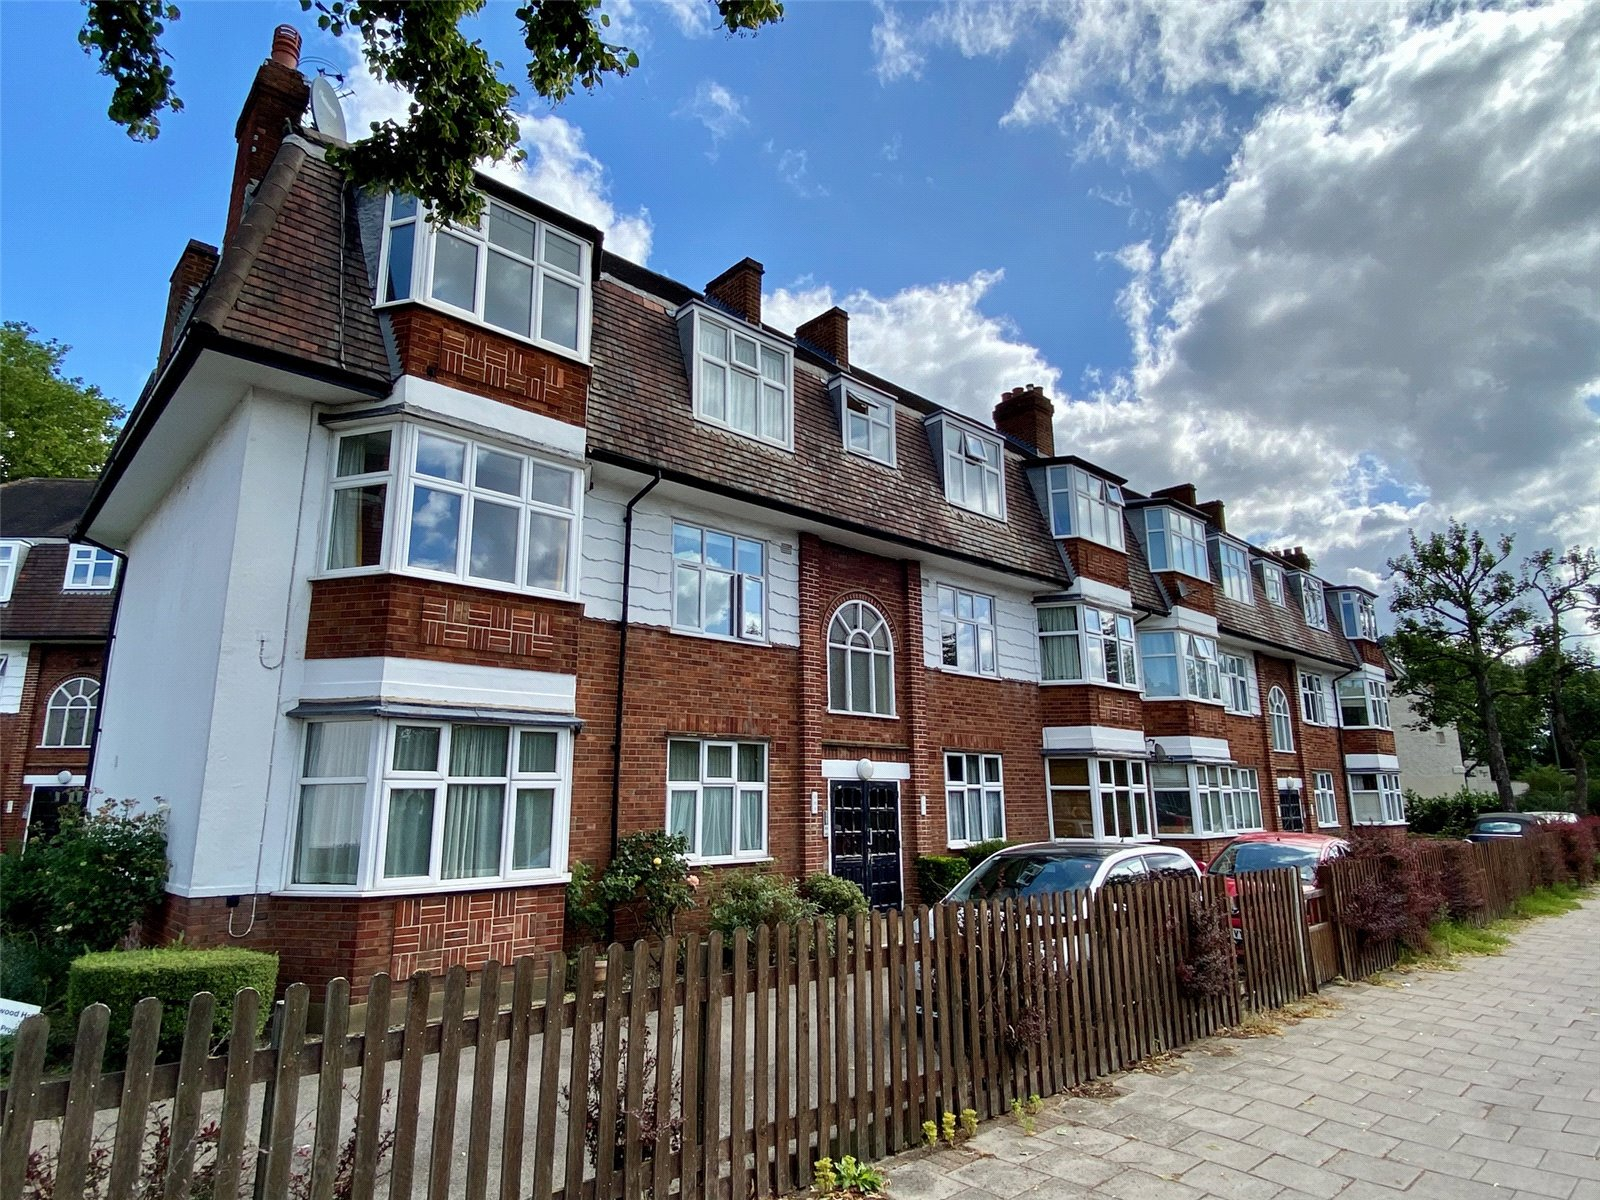 2 bed apartment to rent in East Finchley, N2 0TA  - Property Image 1